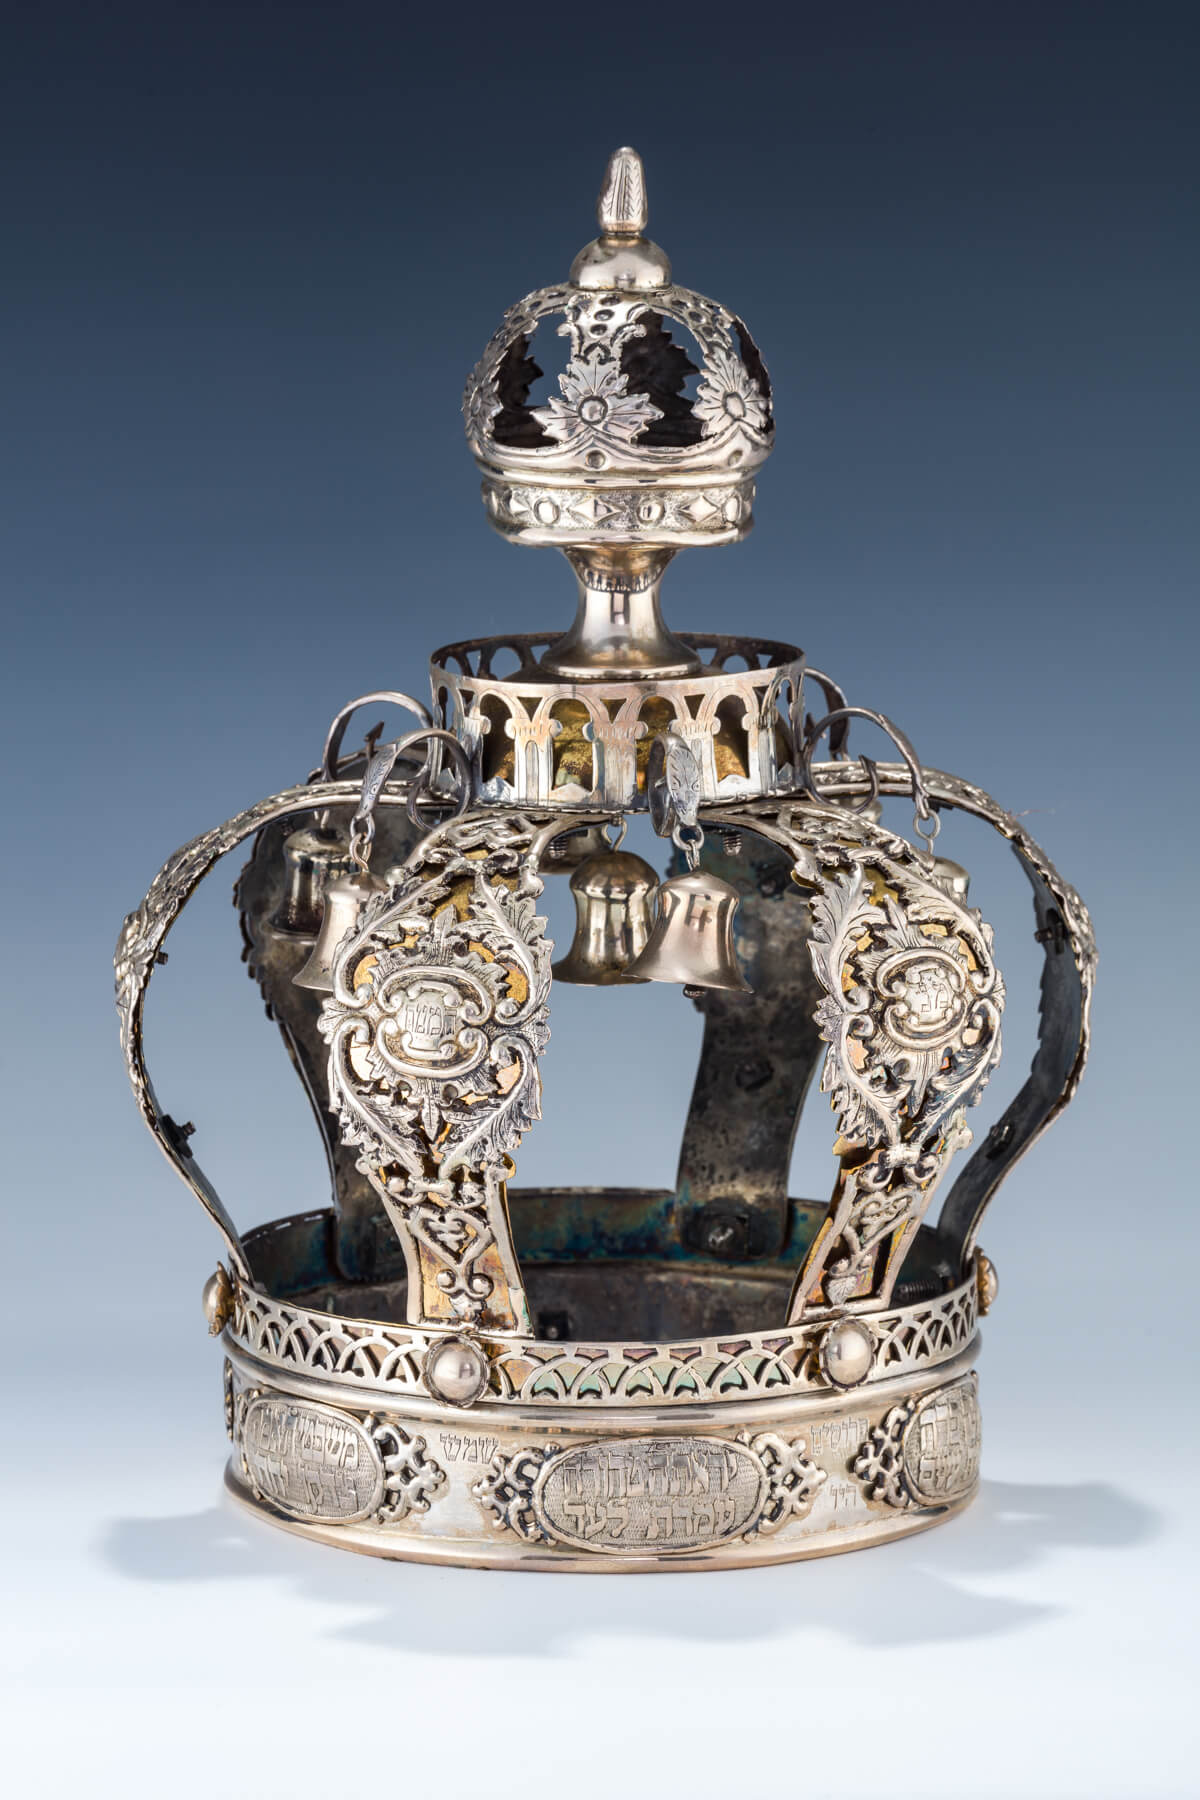 79. A Parcel Gilt Torah Crown